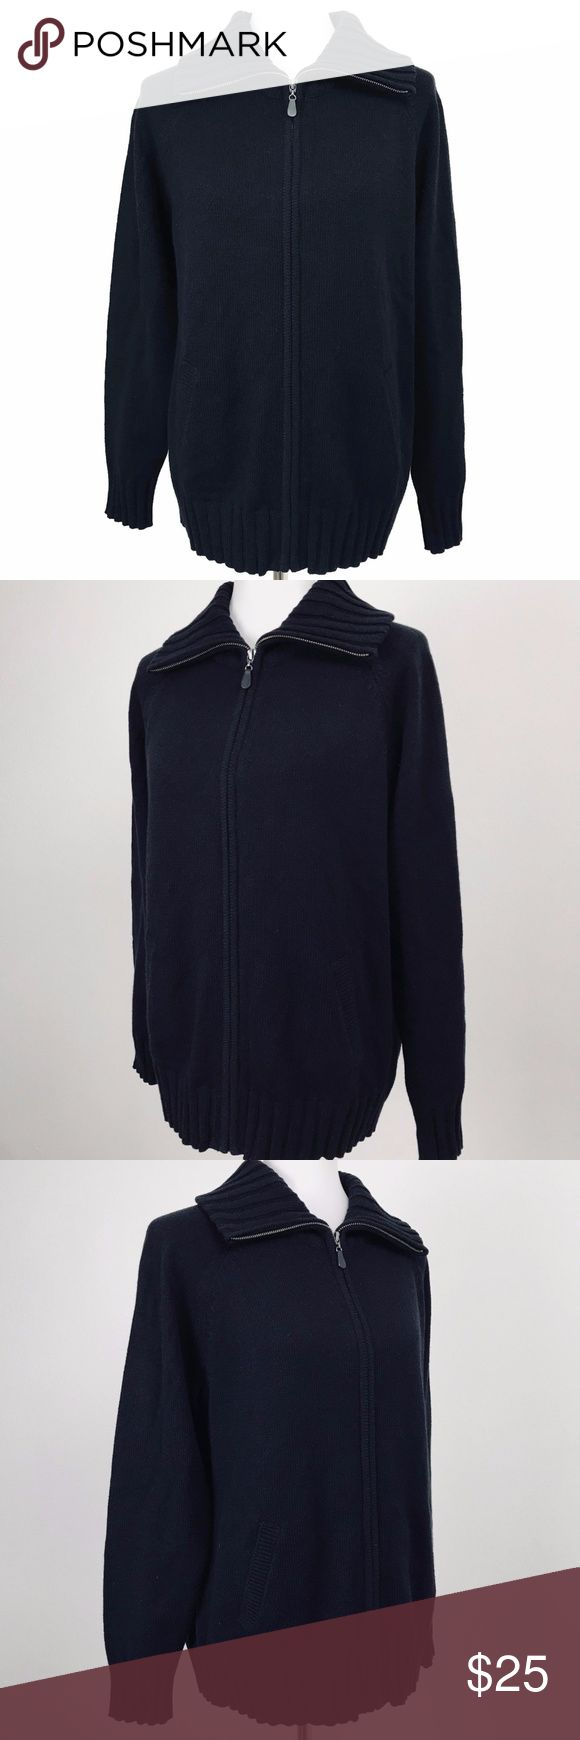 """NWT Karen Scott Black Full Zip Sweater Jacket New with Tags. Warm Knit Sweater/Jacket. Wing Collar, Full Zip, Side Pockets. Measurements (taken with garment laying flat): Bust: 42"""" unstretched (armpit to armpit x 2). Length: 26"""" (top of shoulder to bottom hem). Karen Scott Jackets & Coats"""